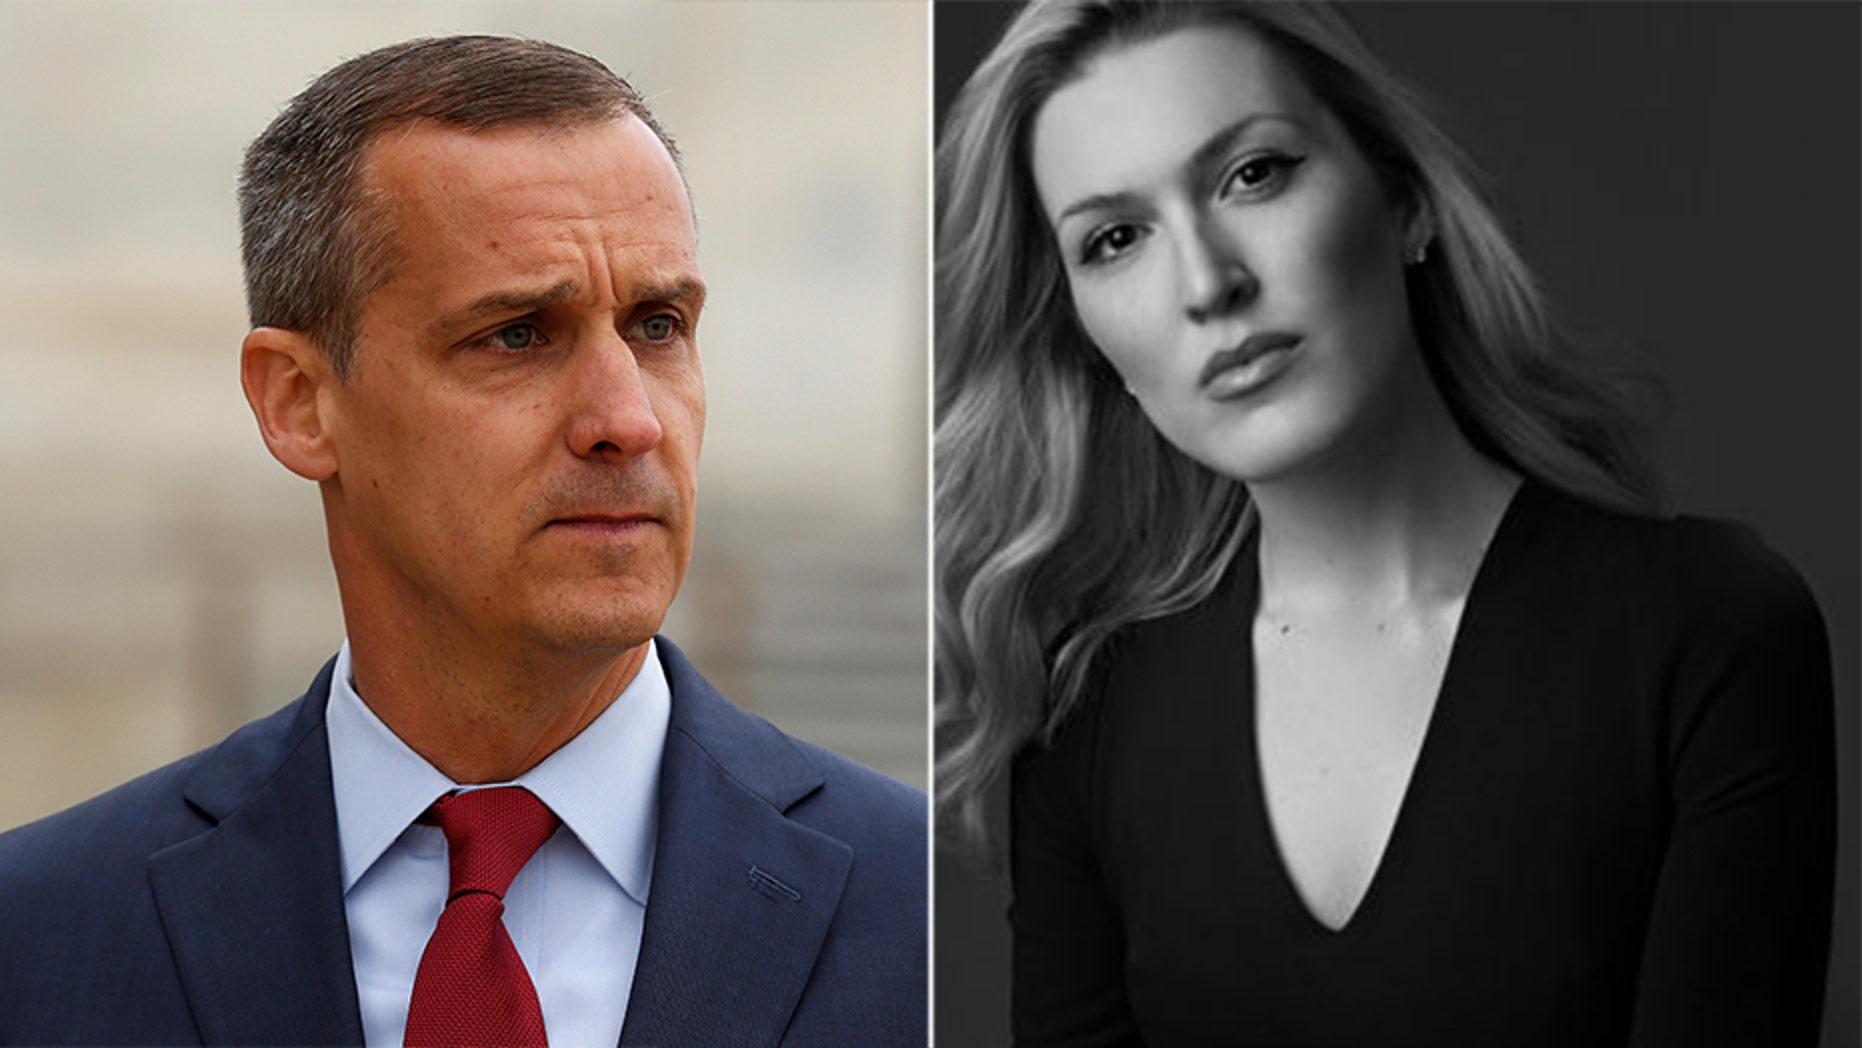 Olivia Nuzzi, right, remains without remorse after the New York Magazine journalist admitted to entering the home office of Corey Lewandowski, left, without permission for a story.